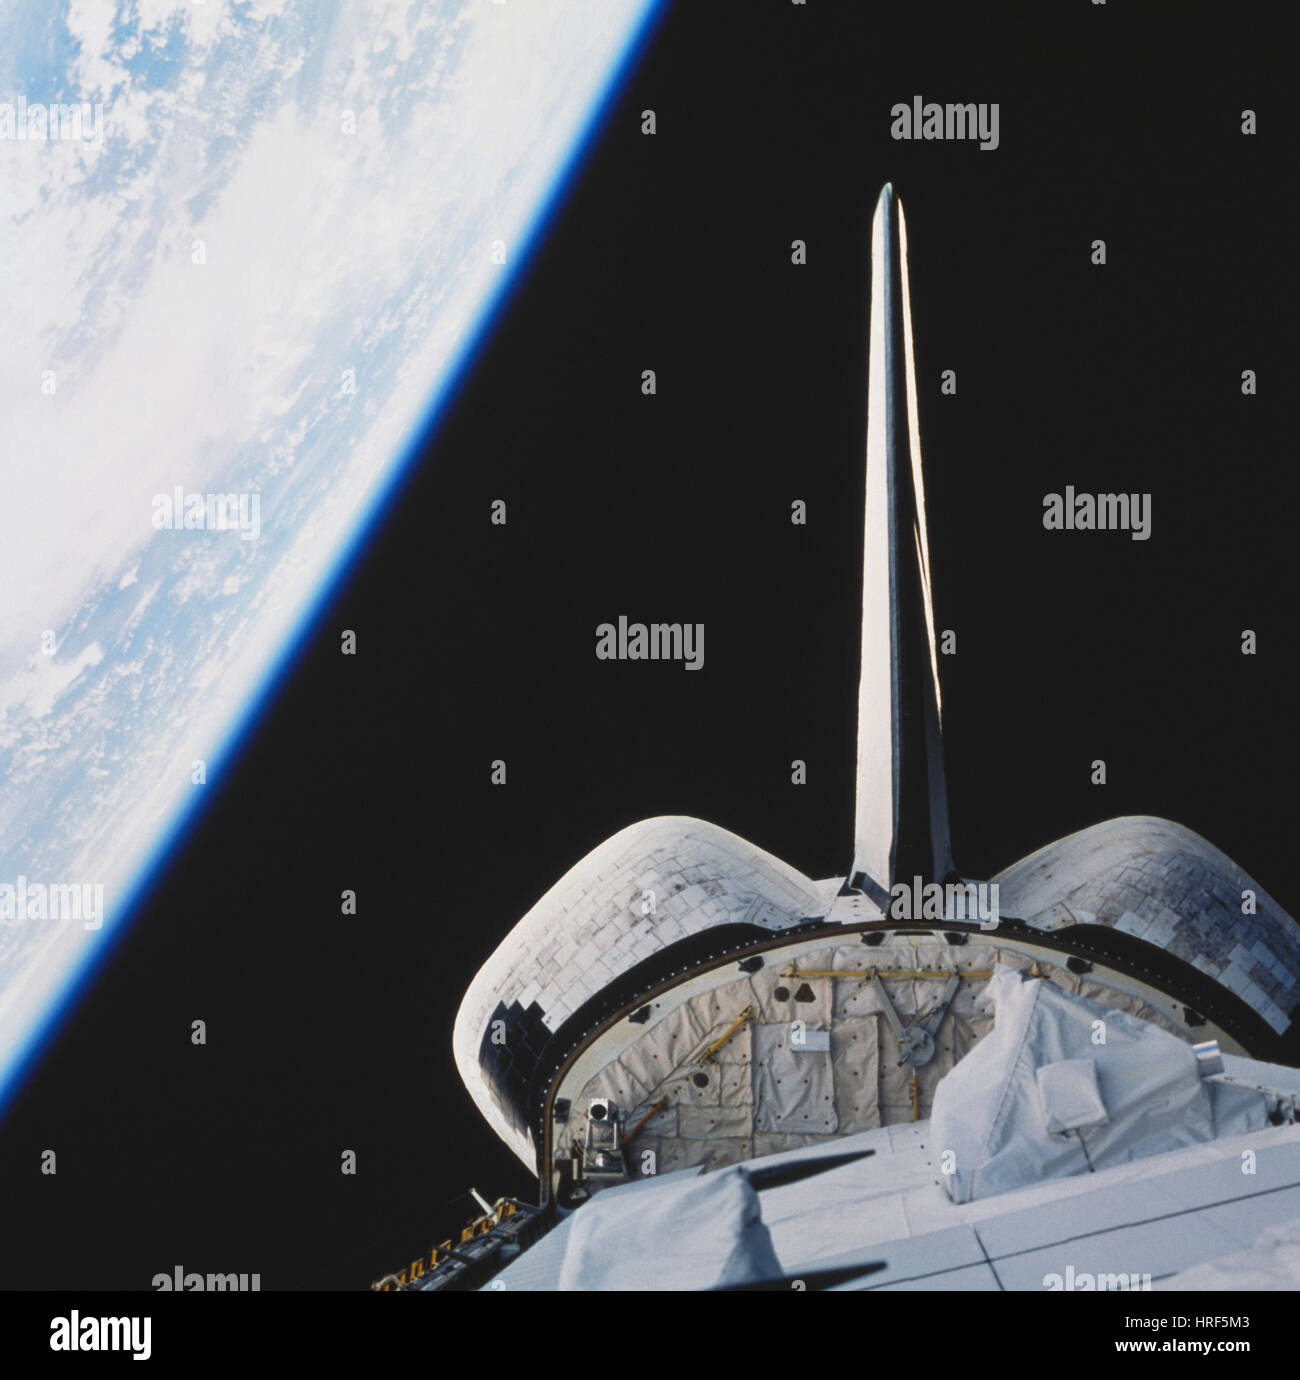 STS-99, Space Shuttle Endeavour, 2000 - Stock Image